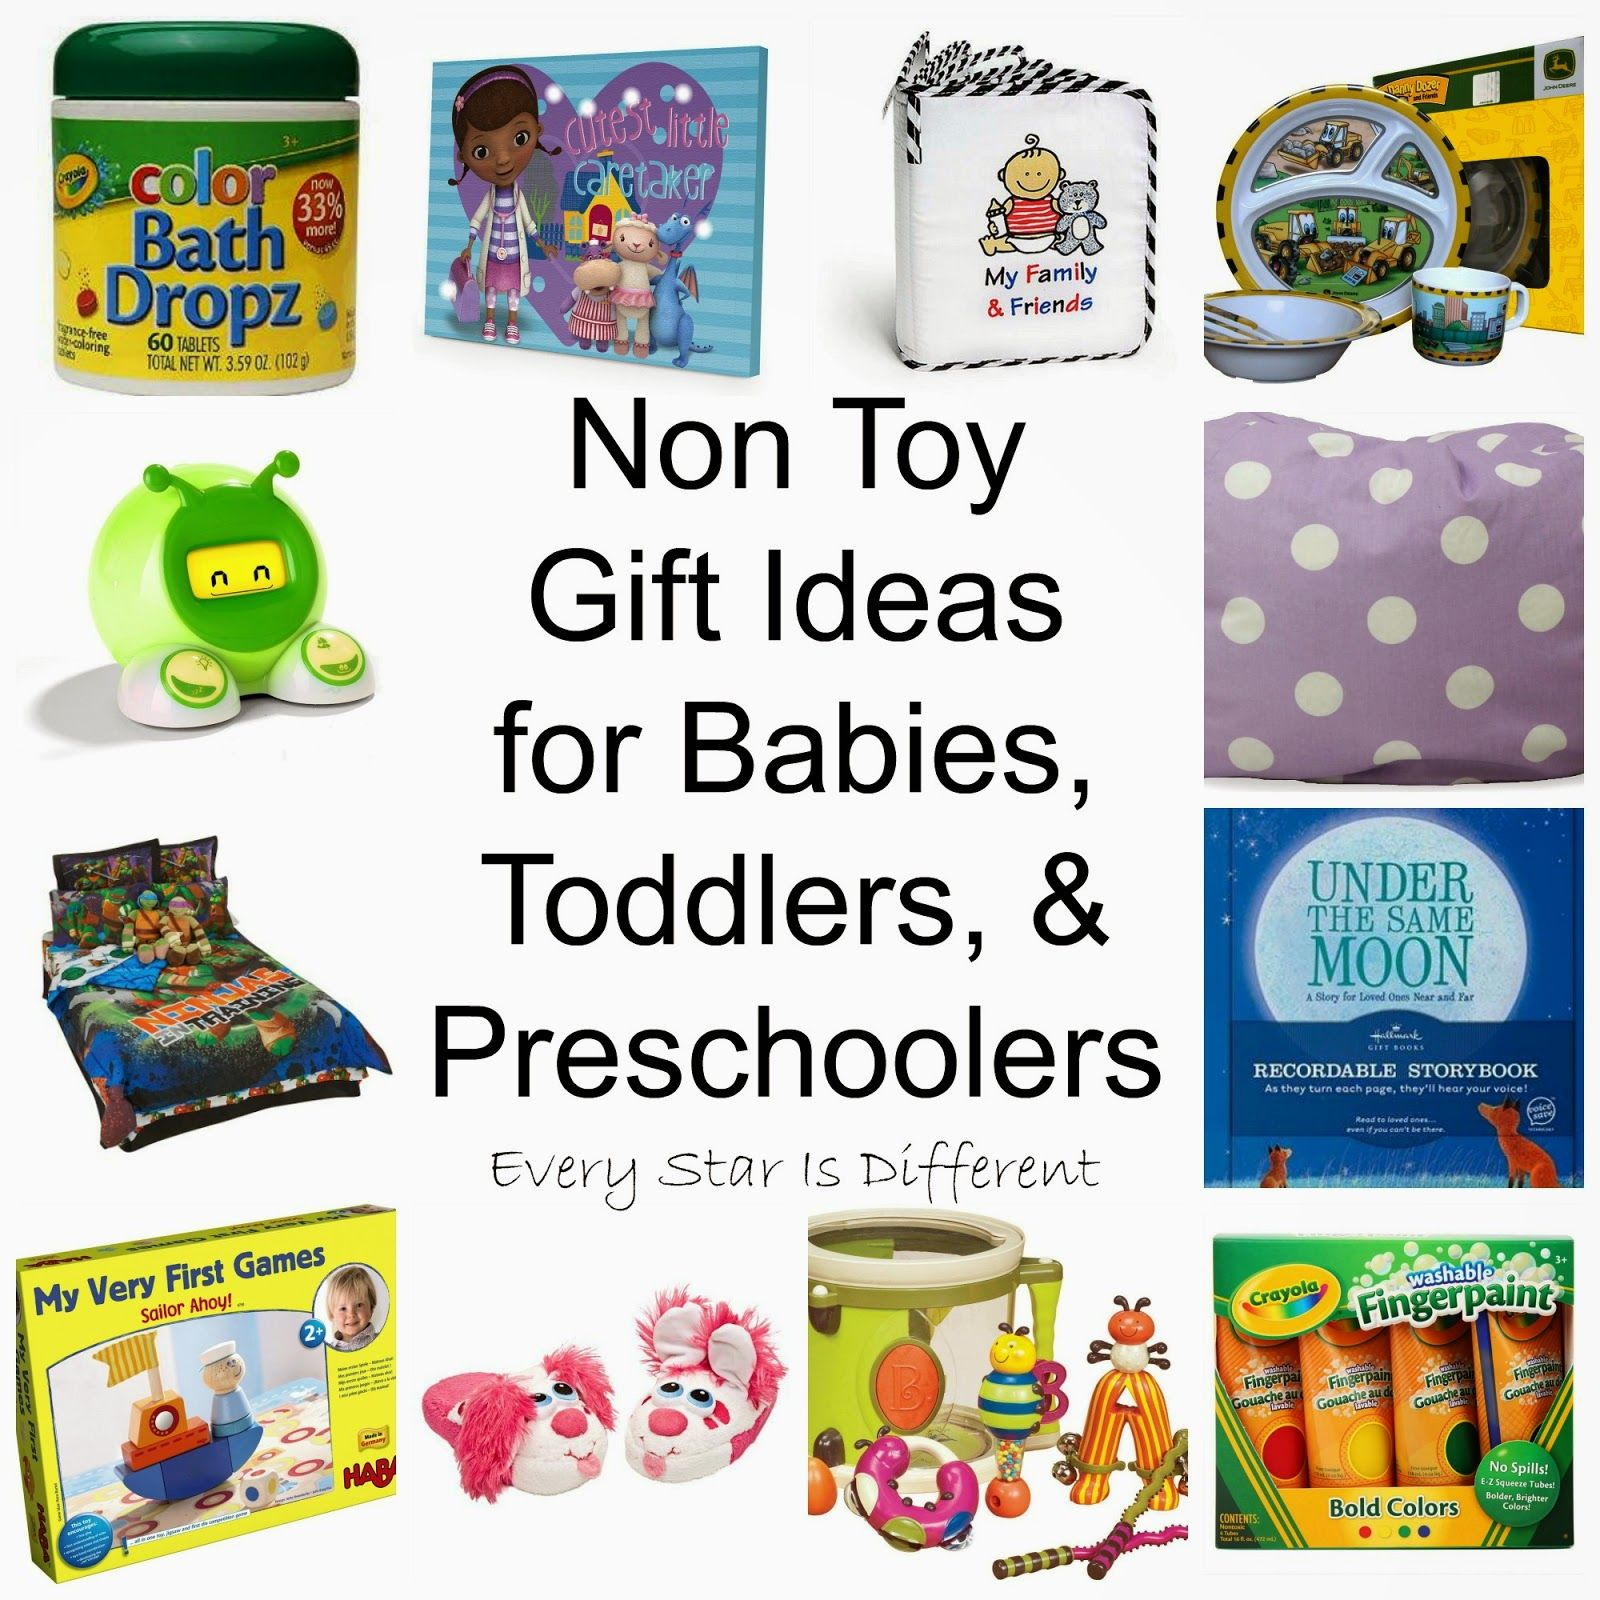 every star is different non toy gift ideas for babies toddlers preschoolers